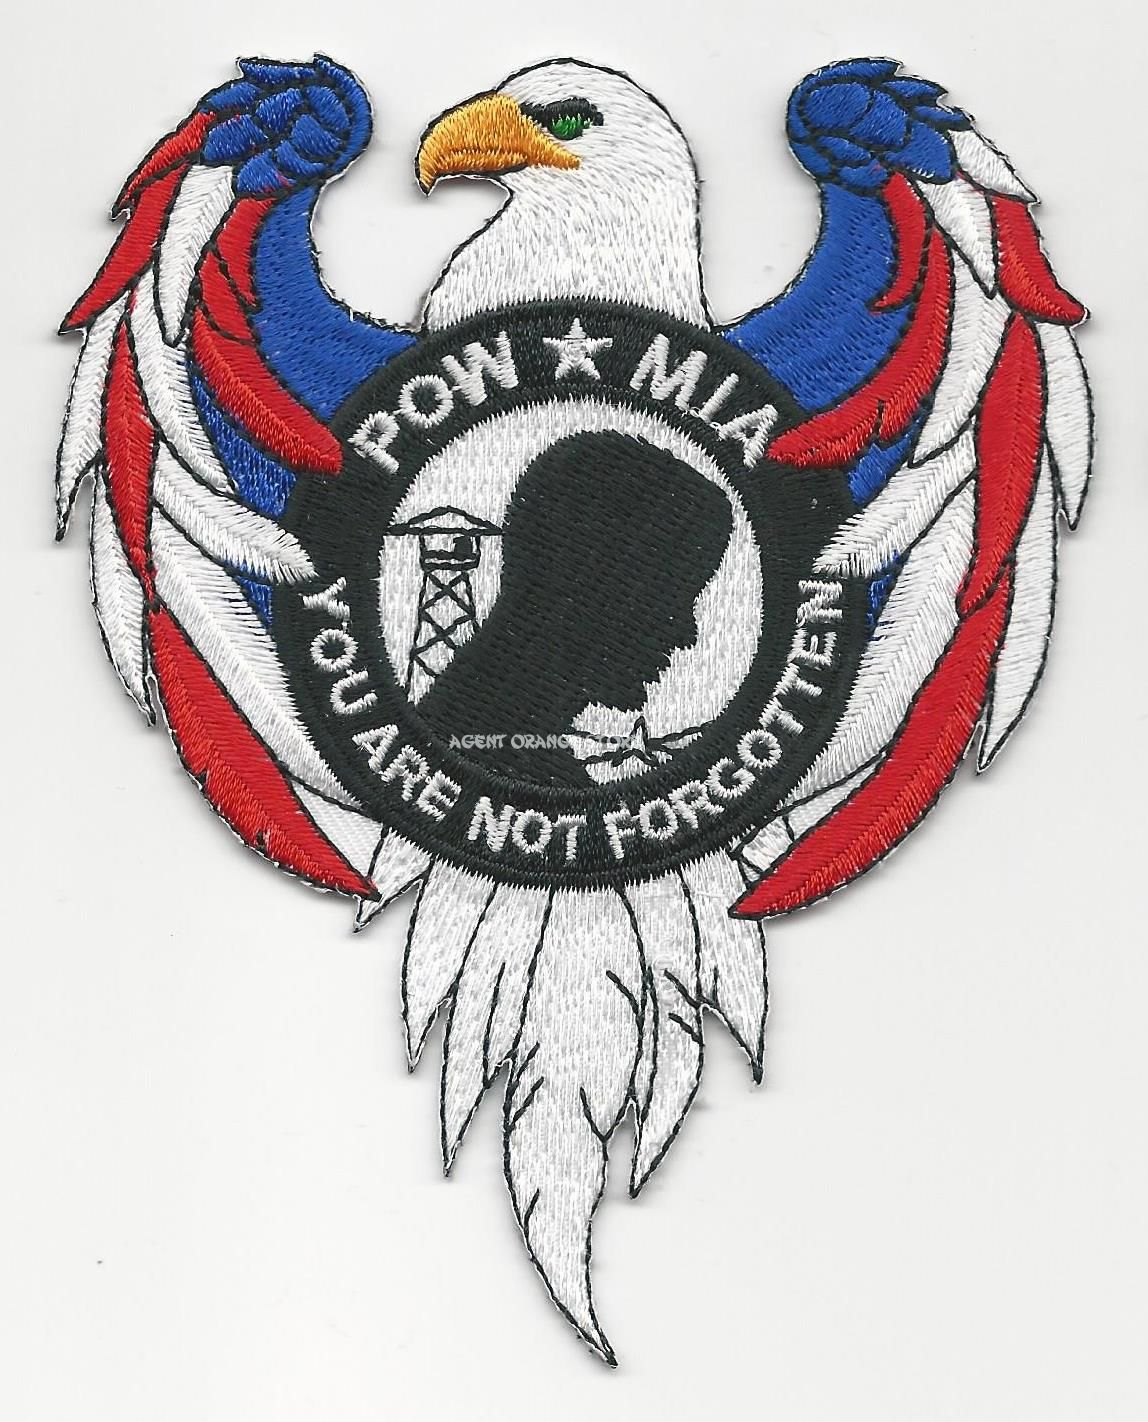 POW/MIA EAGLE PATCHES